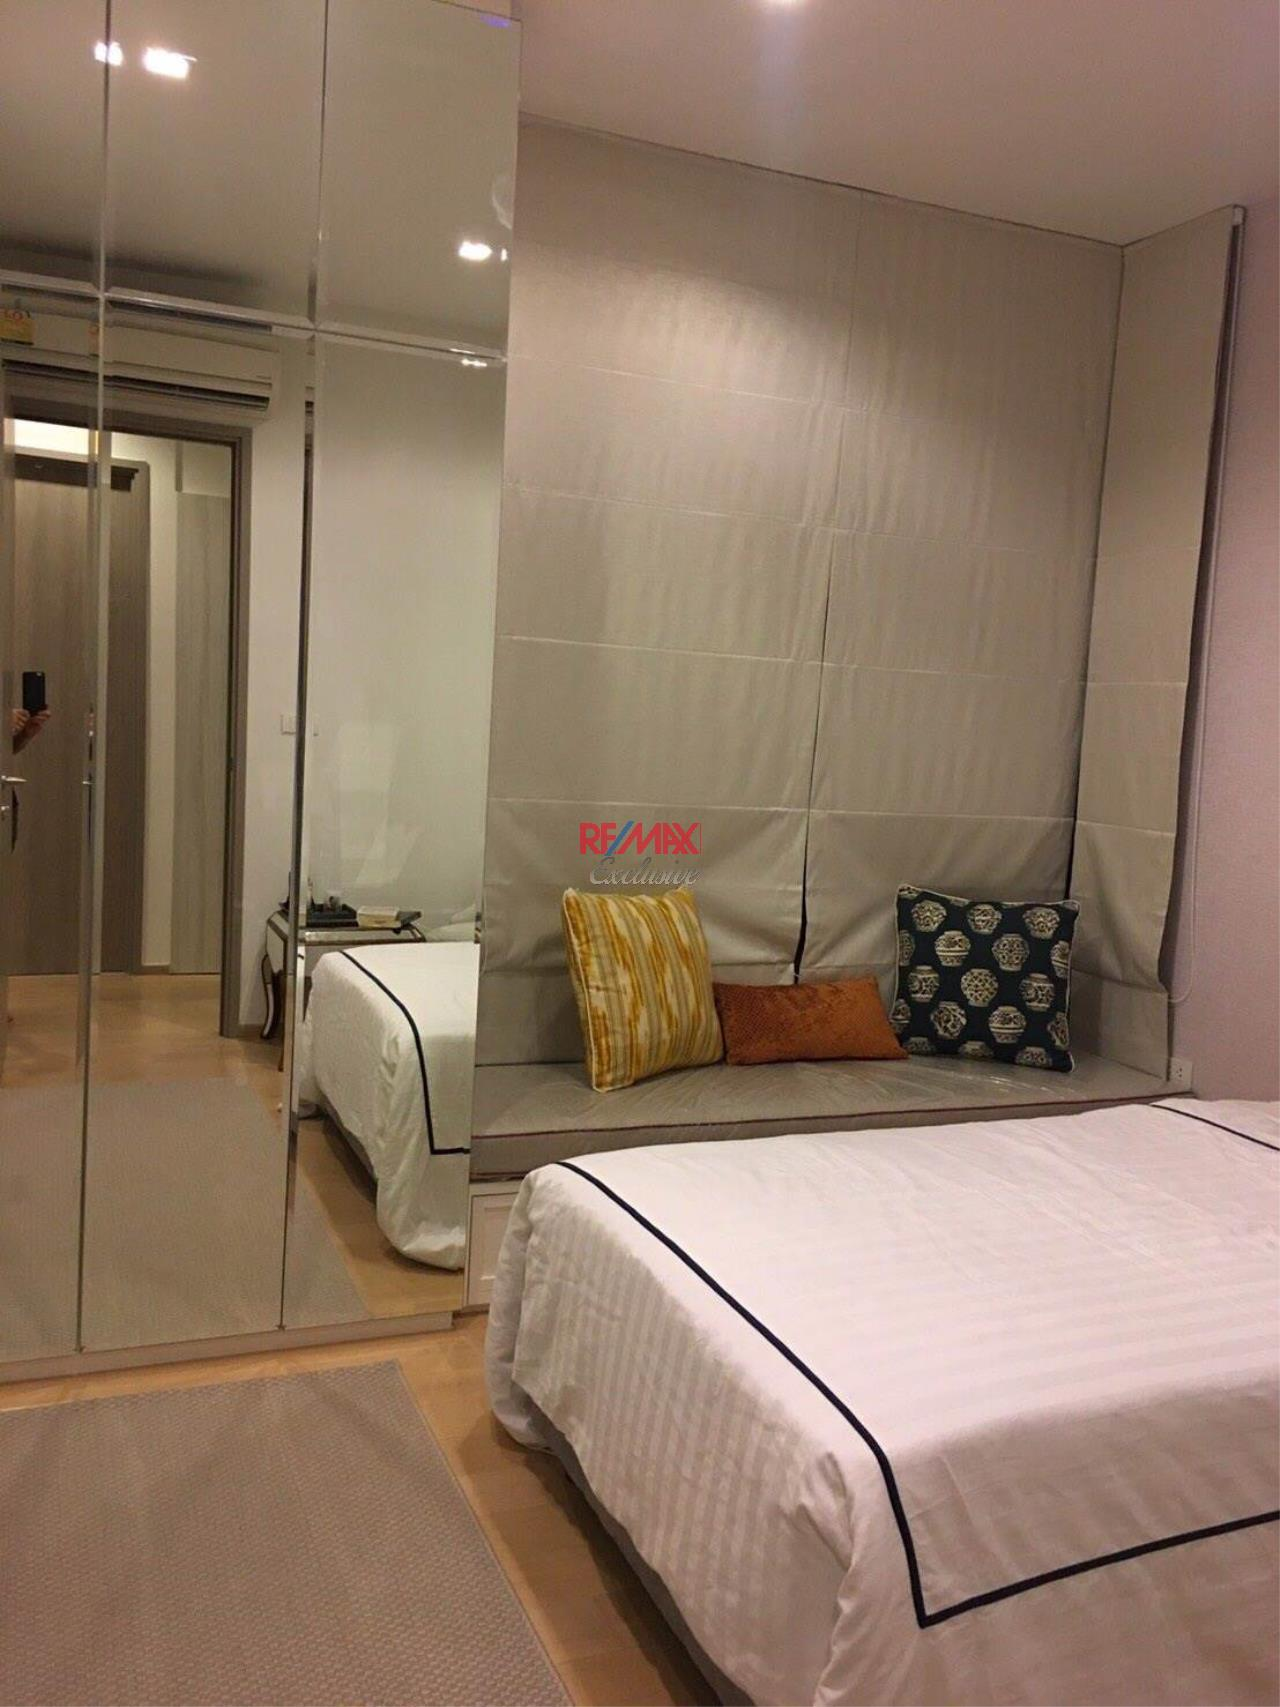 RE/MAX Exclusive Agency's HQ Thonglor, 2 Bedrooms 80 Sqm., High Floor With Nice View, For Rent!! 11